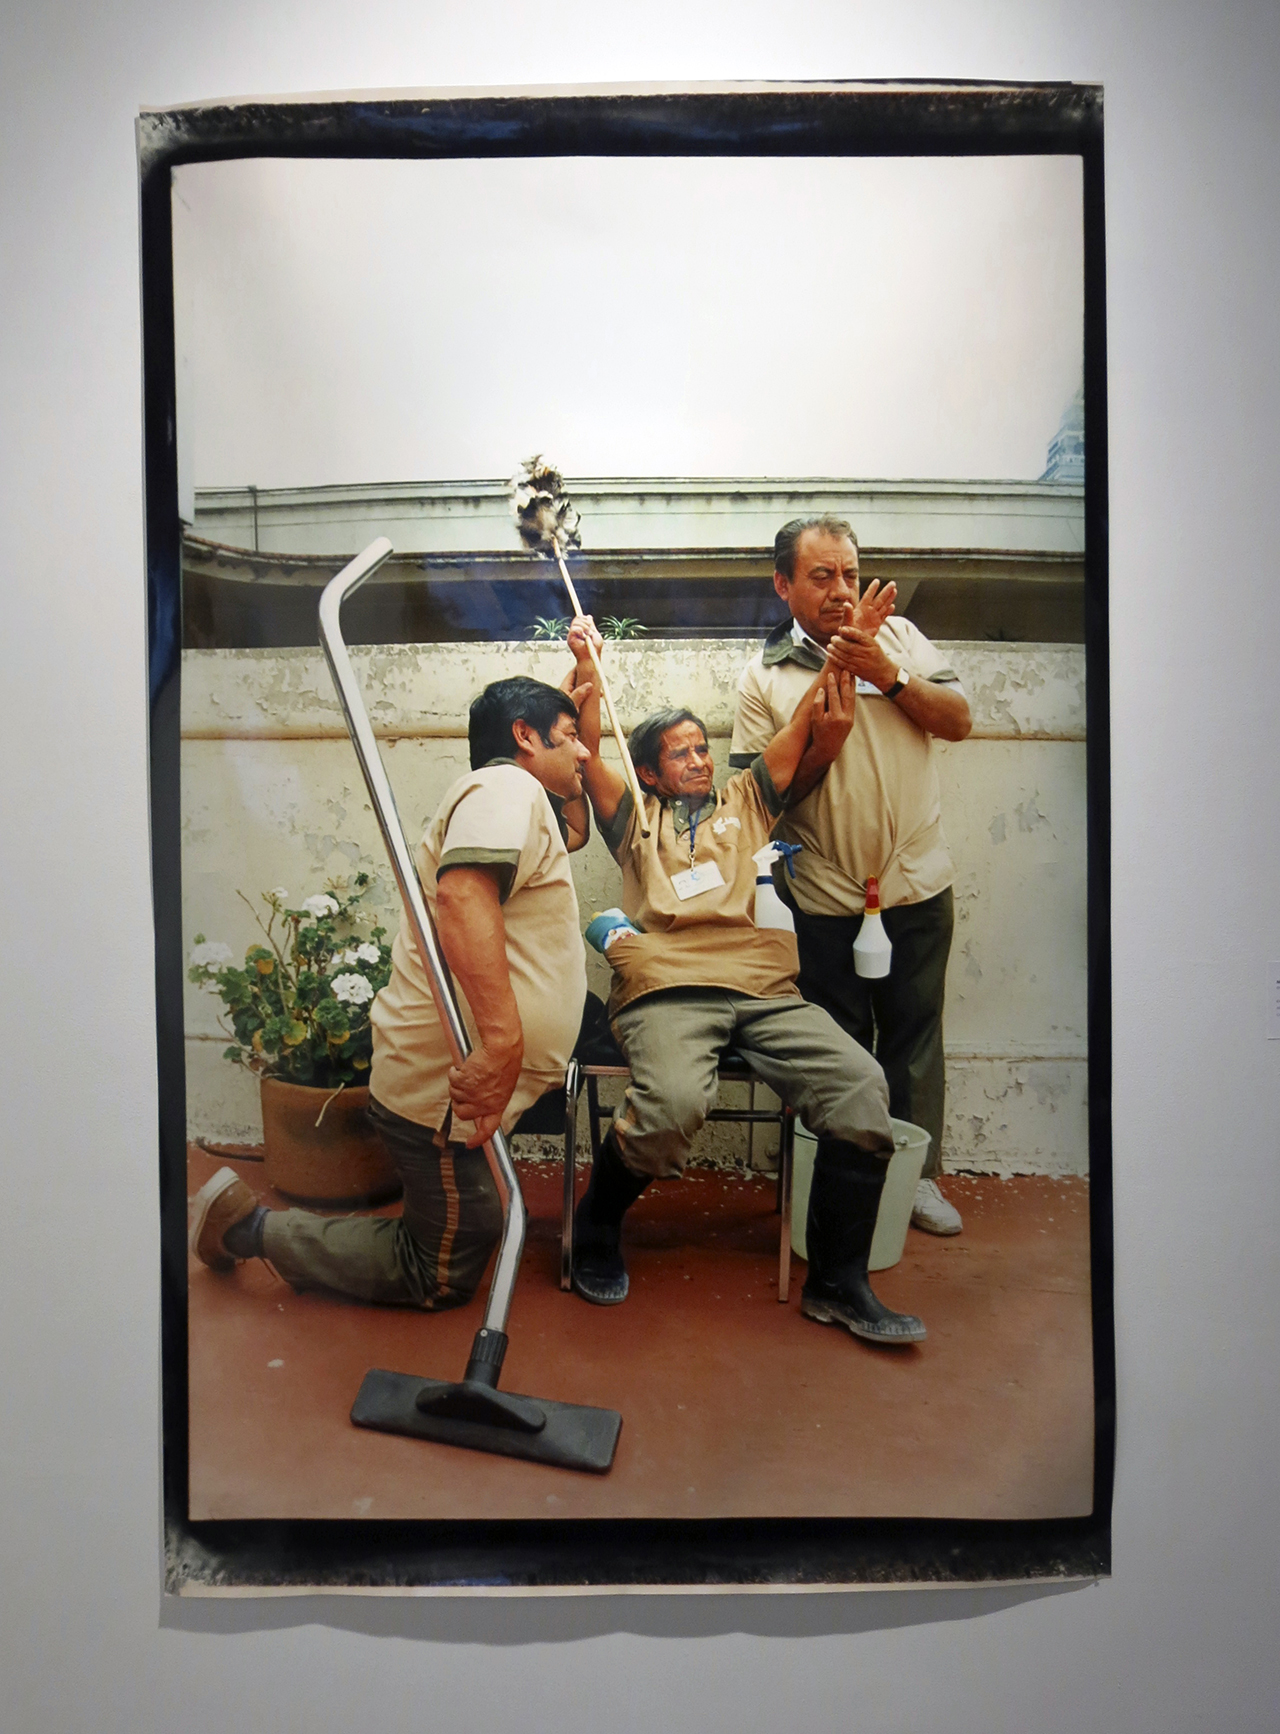 A work from Miguel Calderón's 'Empleado del mes (Employee of the month)' series (1998) (photo by the author for Hyperallergic) (click to enlarge)